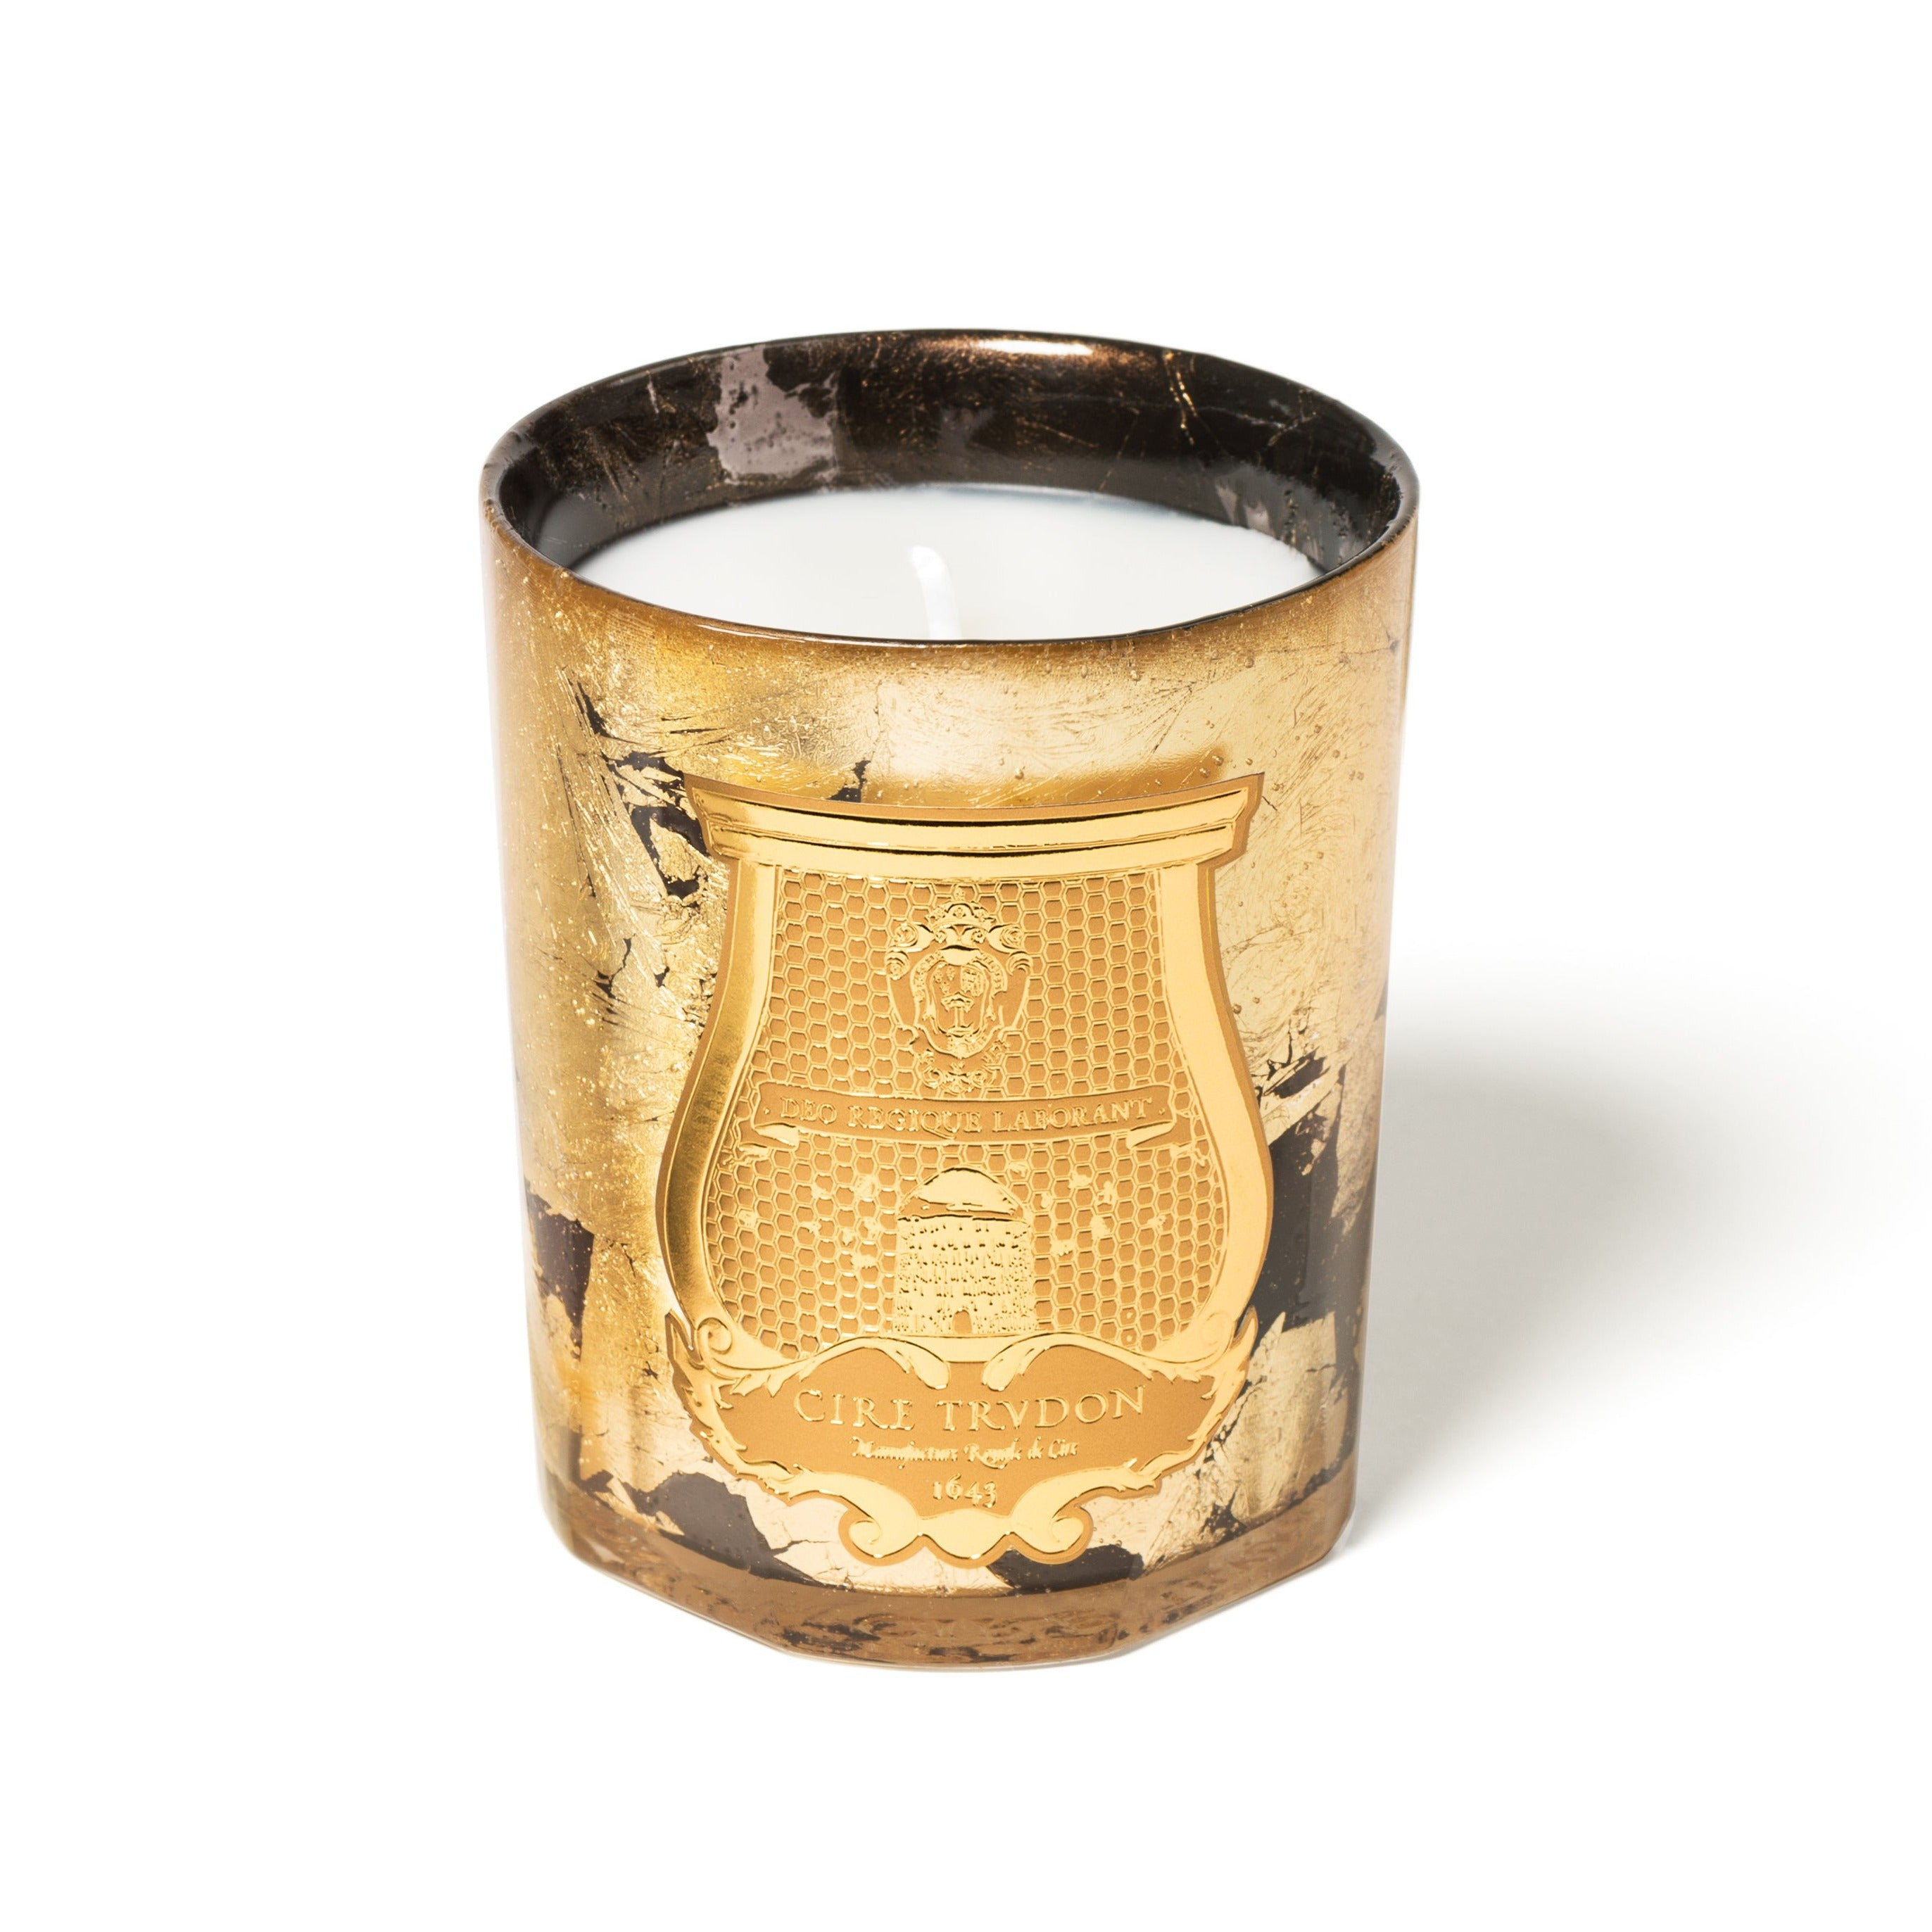 Ernesto Gold Leaf/Anthracite Christmas 2020 Candle (270gs) by Cire Trudon